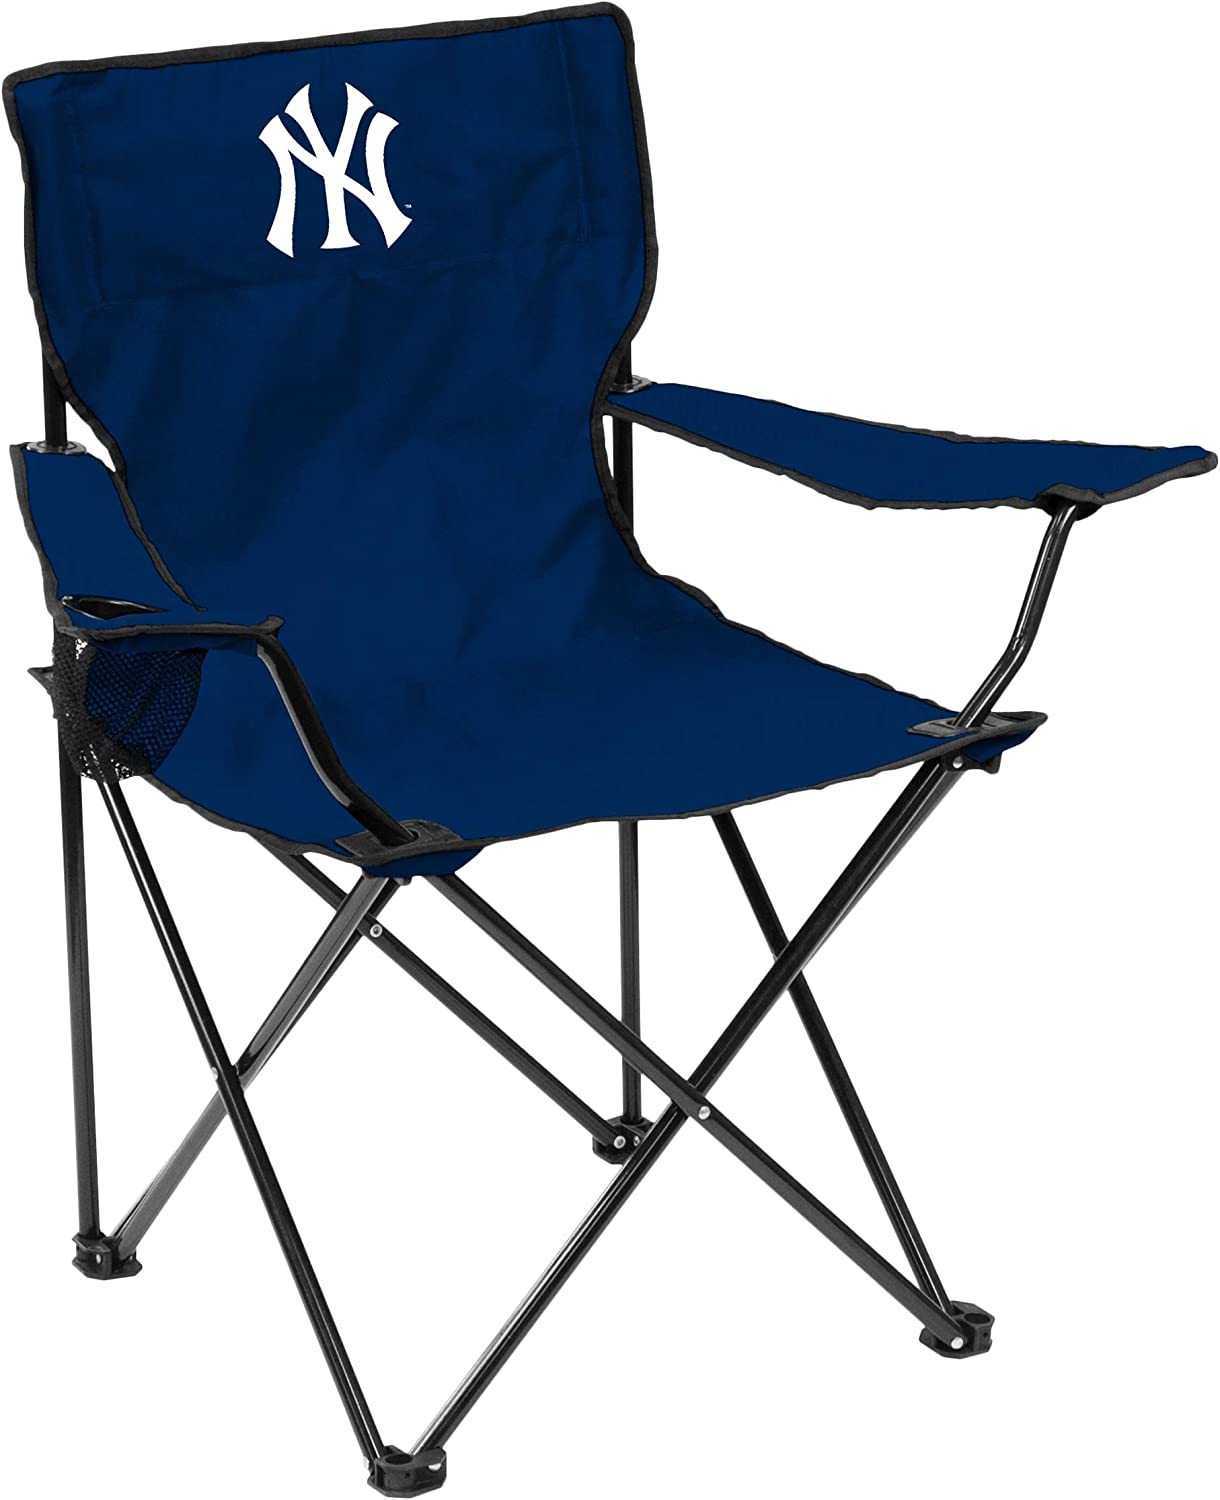 logobrands MLB New York Yankees Adult Unisex Quad Sporting Chair, Navy Blue/White, One Size